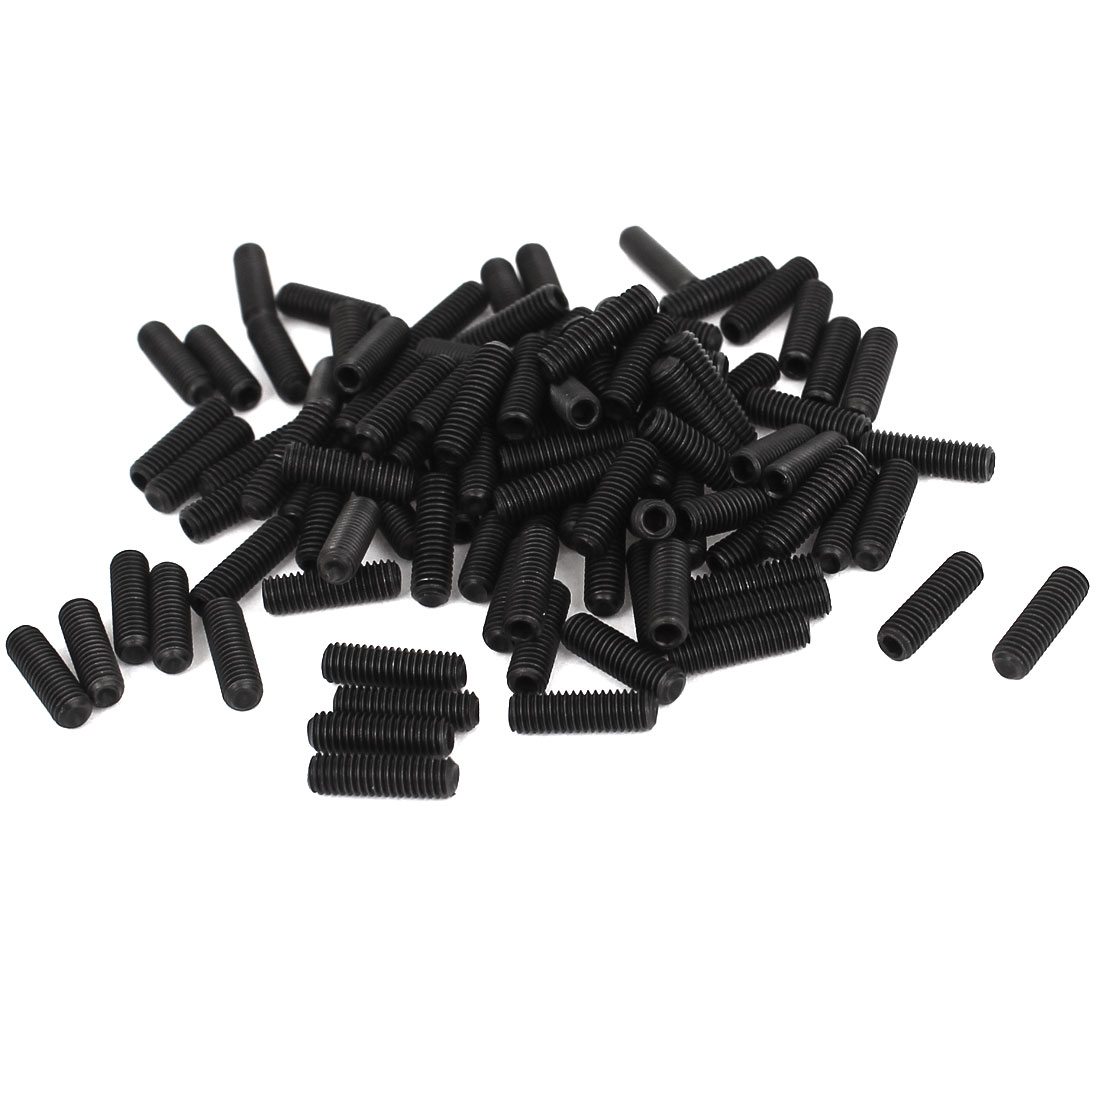 3mm x 10mm 0.5mm Pitch Hex Socket Set Cap Point Grub Screws Black 100pcs